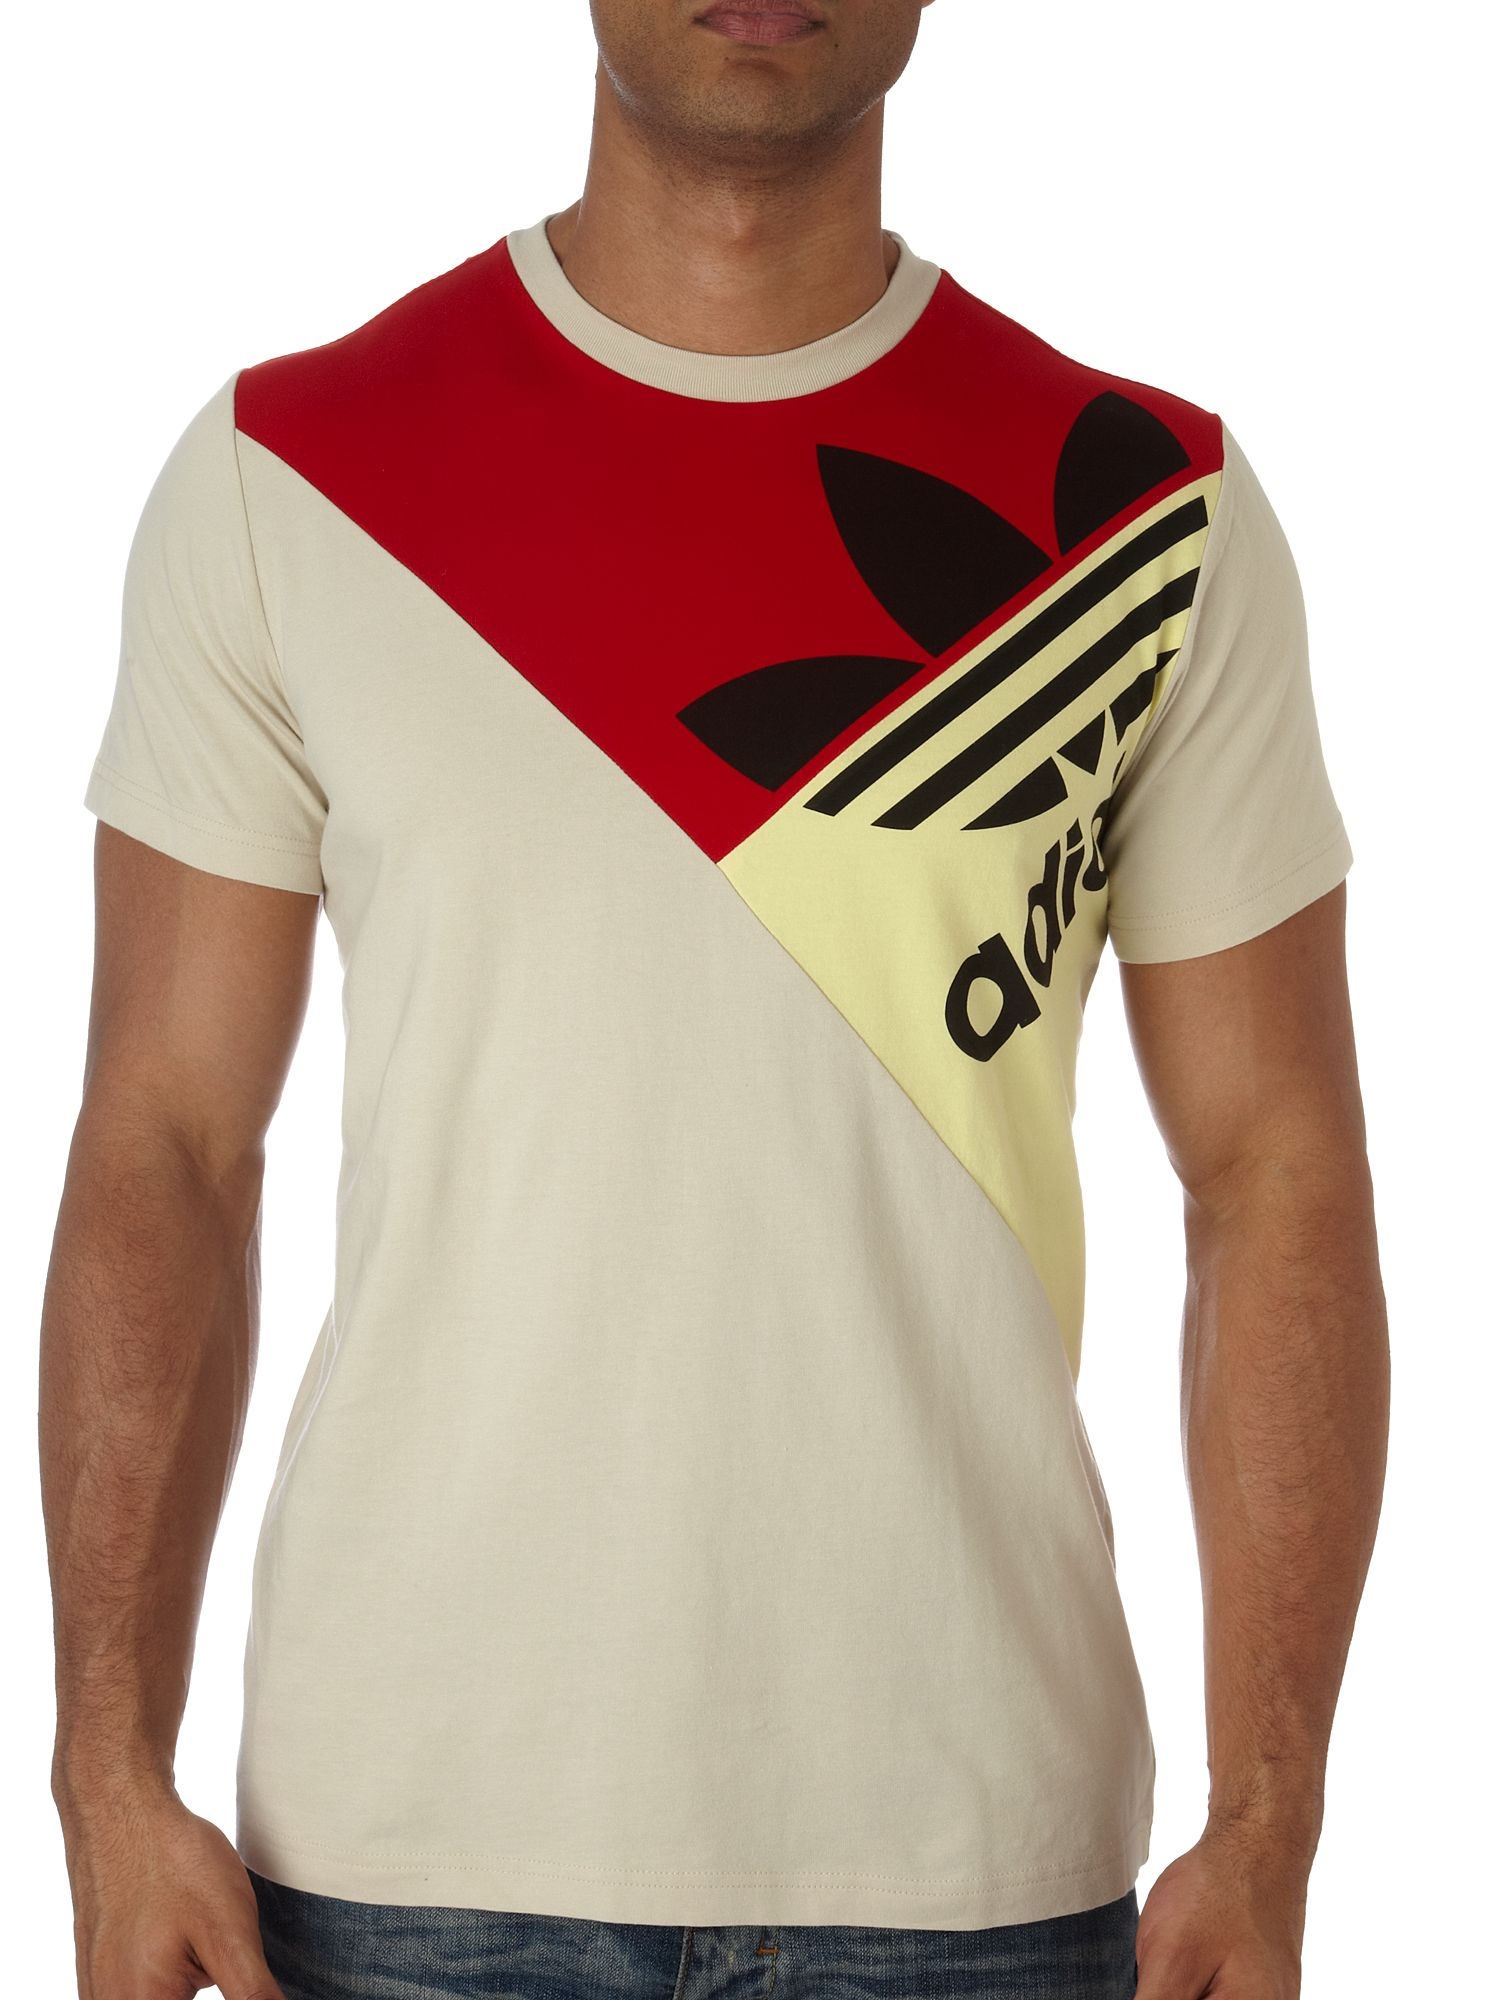 Adidas Triangle logo t-shirt Grey product image